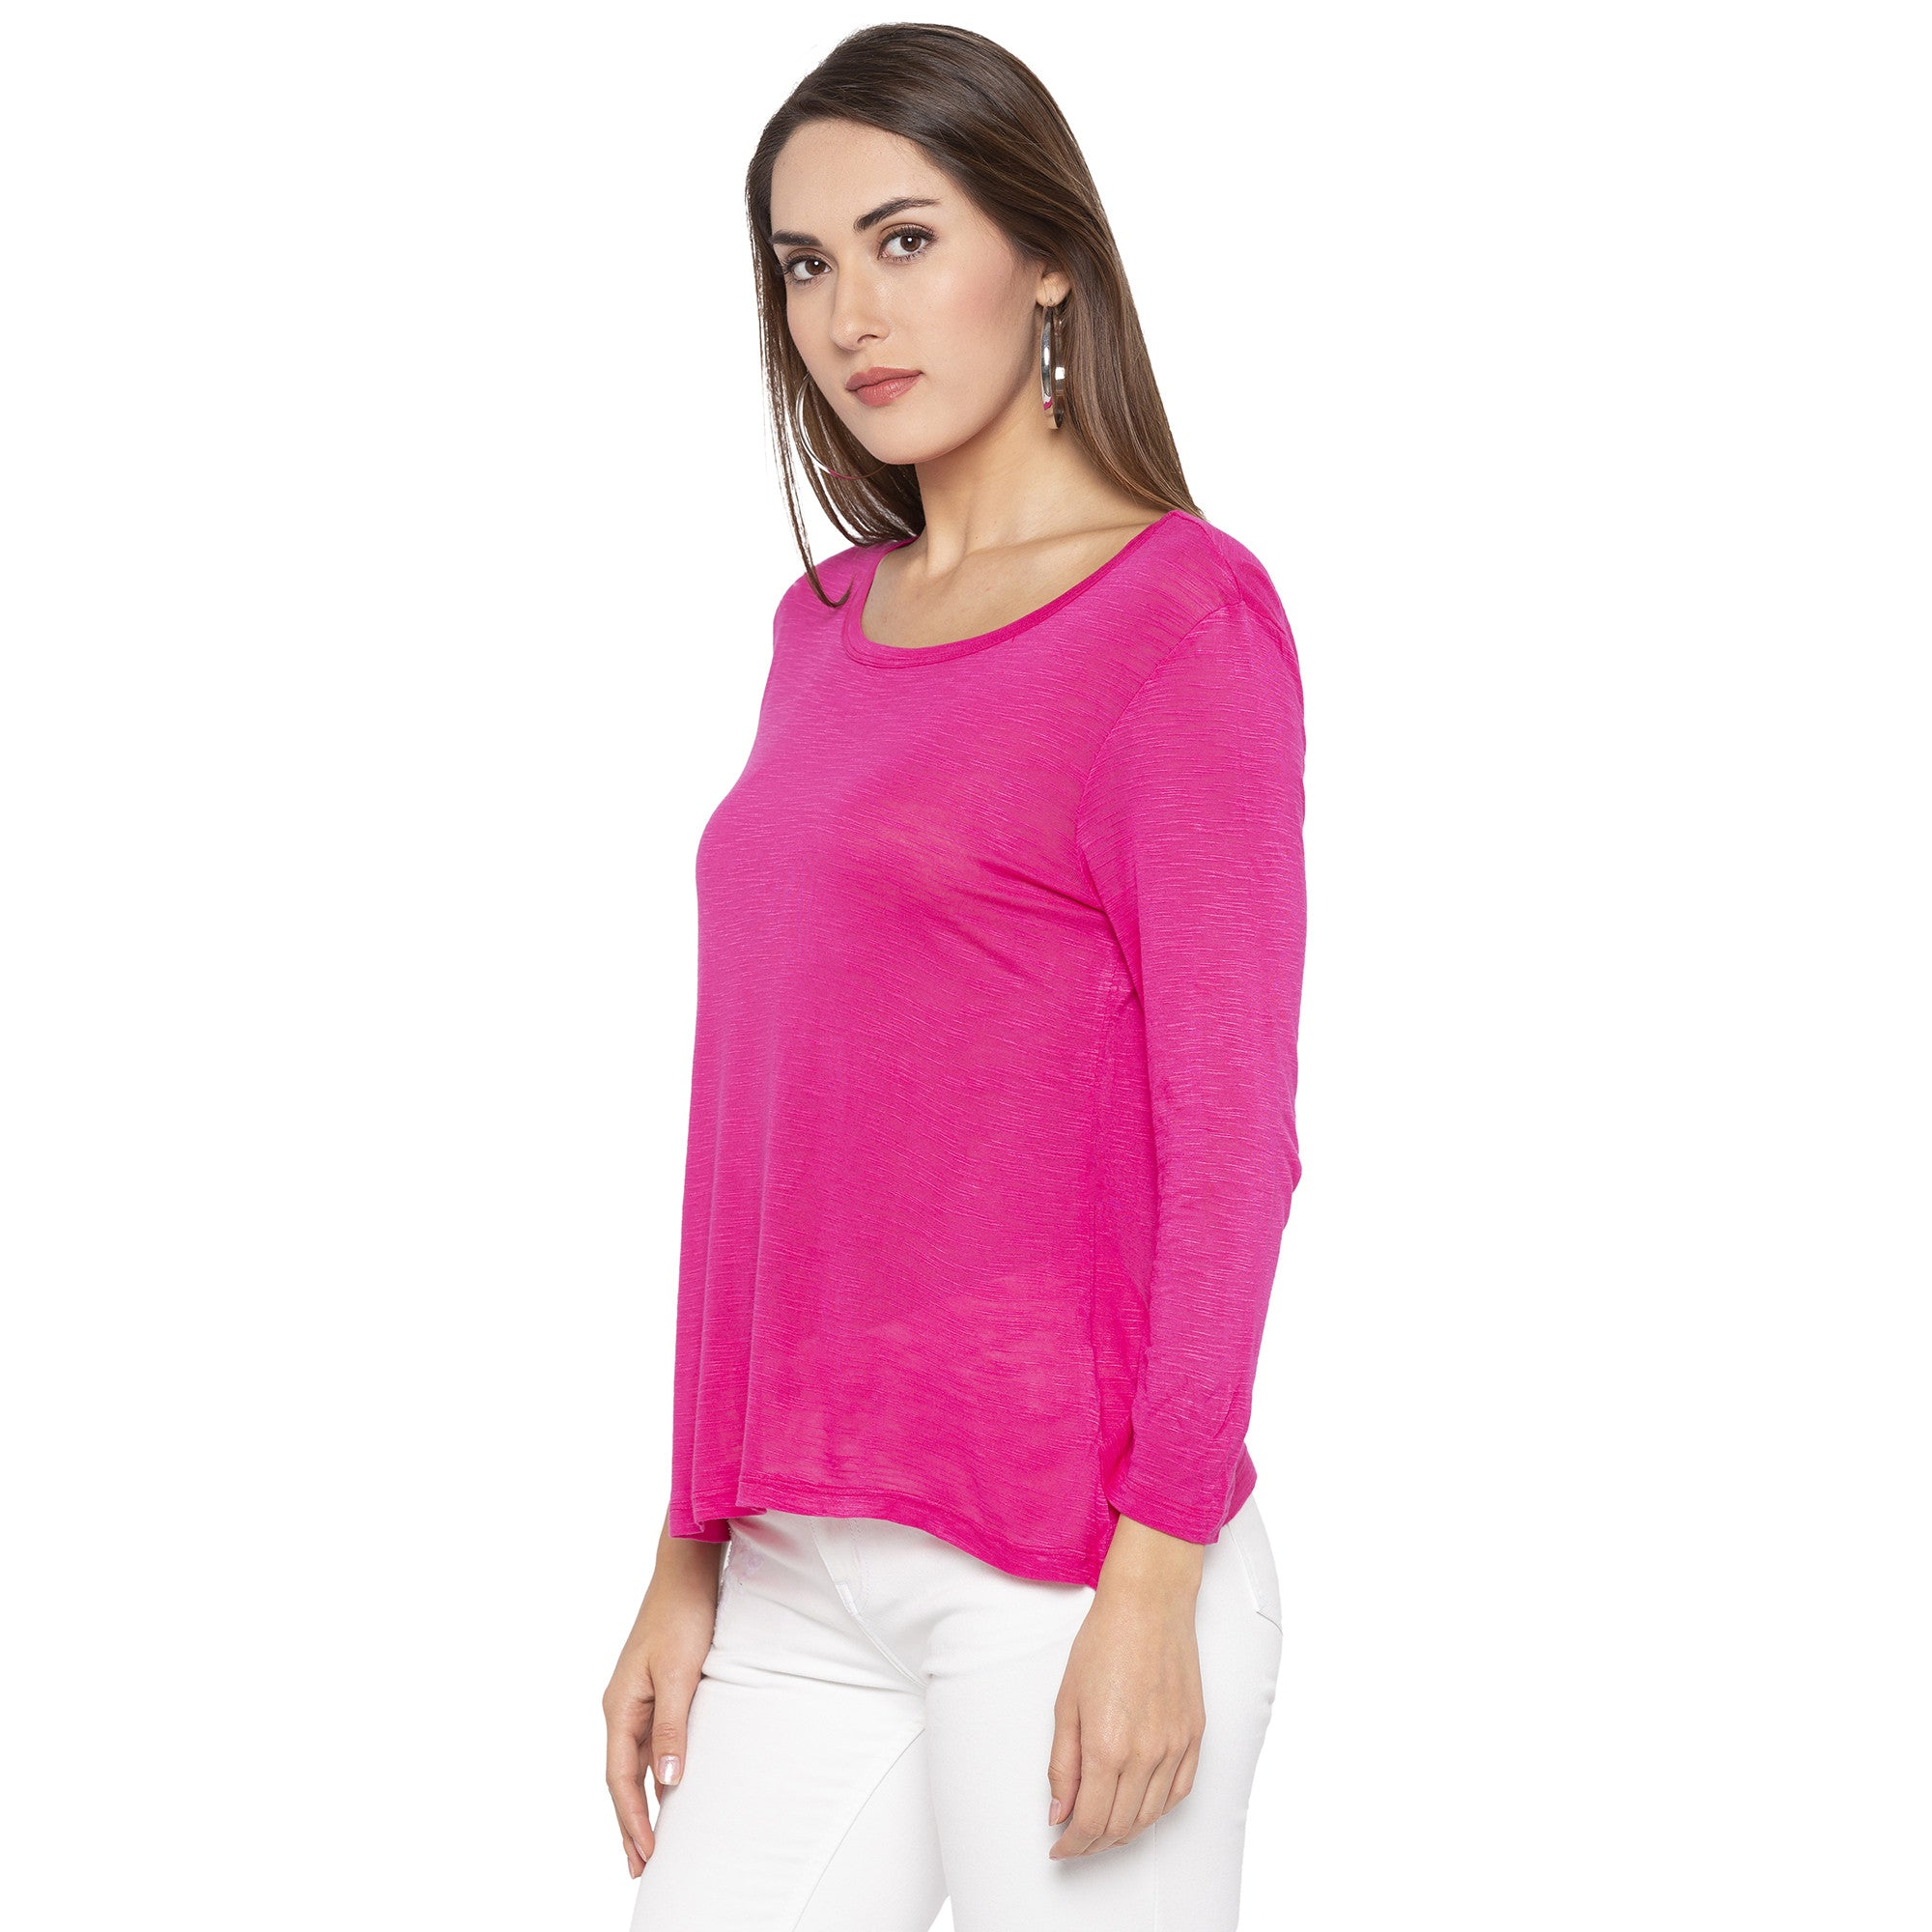 Casual Pink Color Solid Regular Fit Tops-2